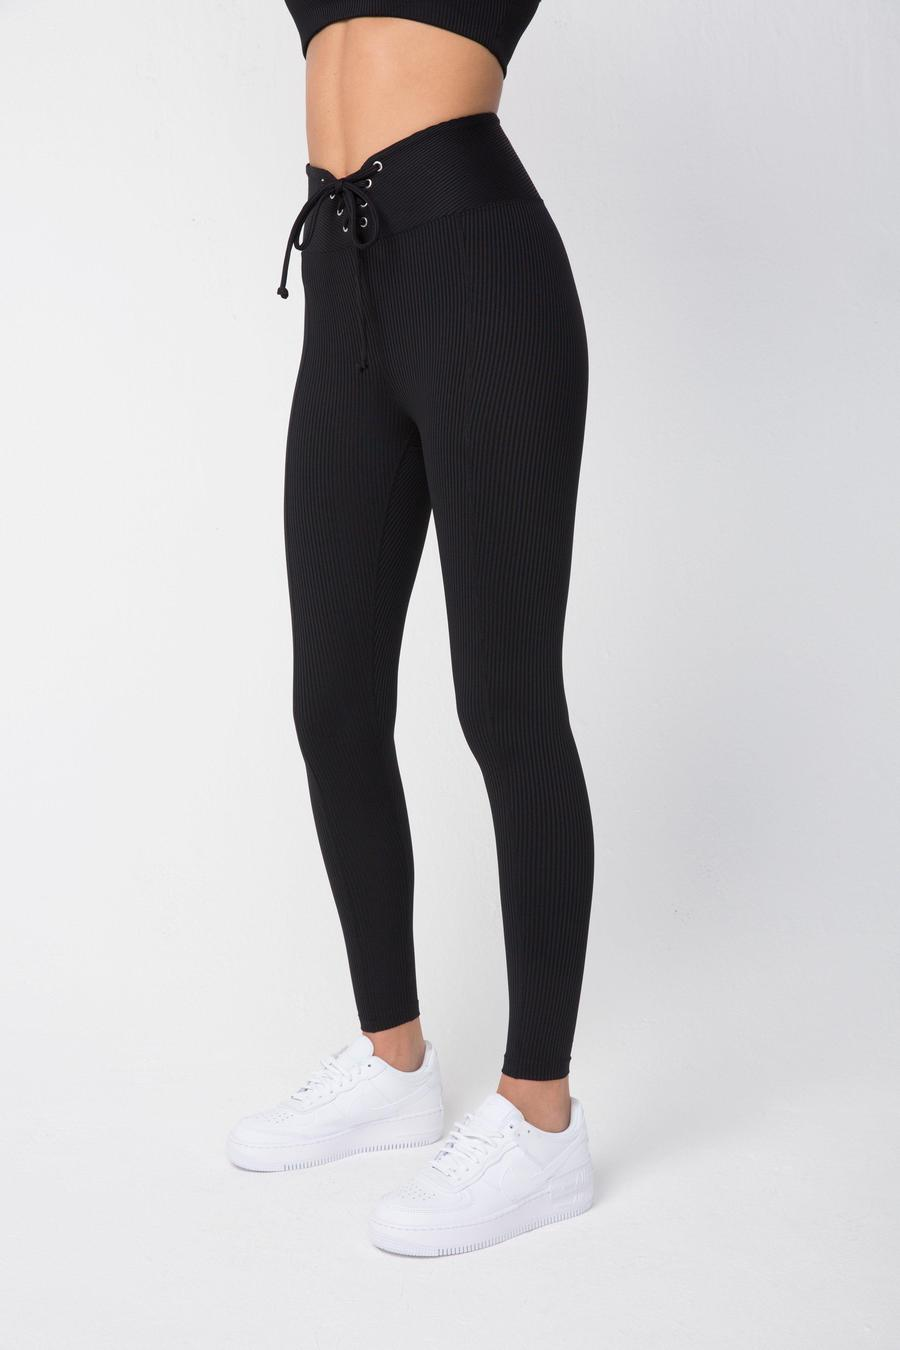 RIBBED FOOTBALL LEGGING | YEAR OF OURS